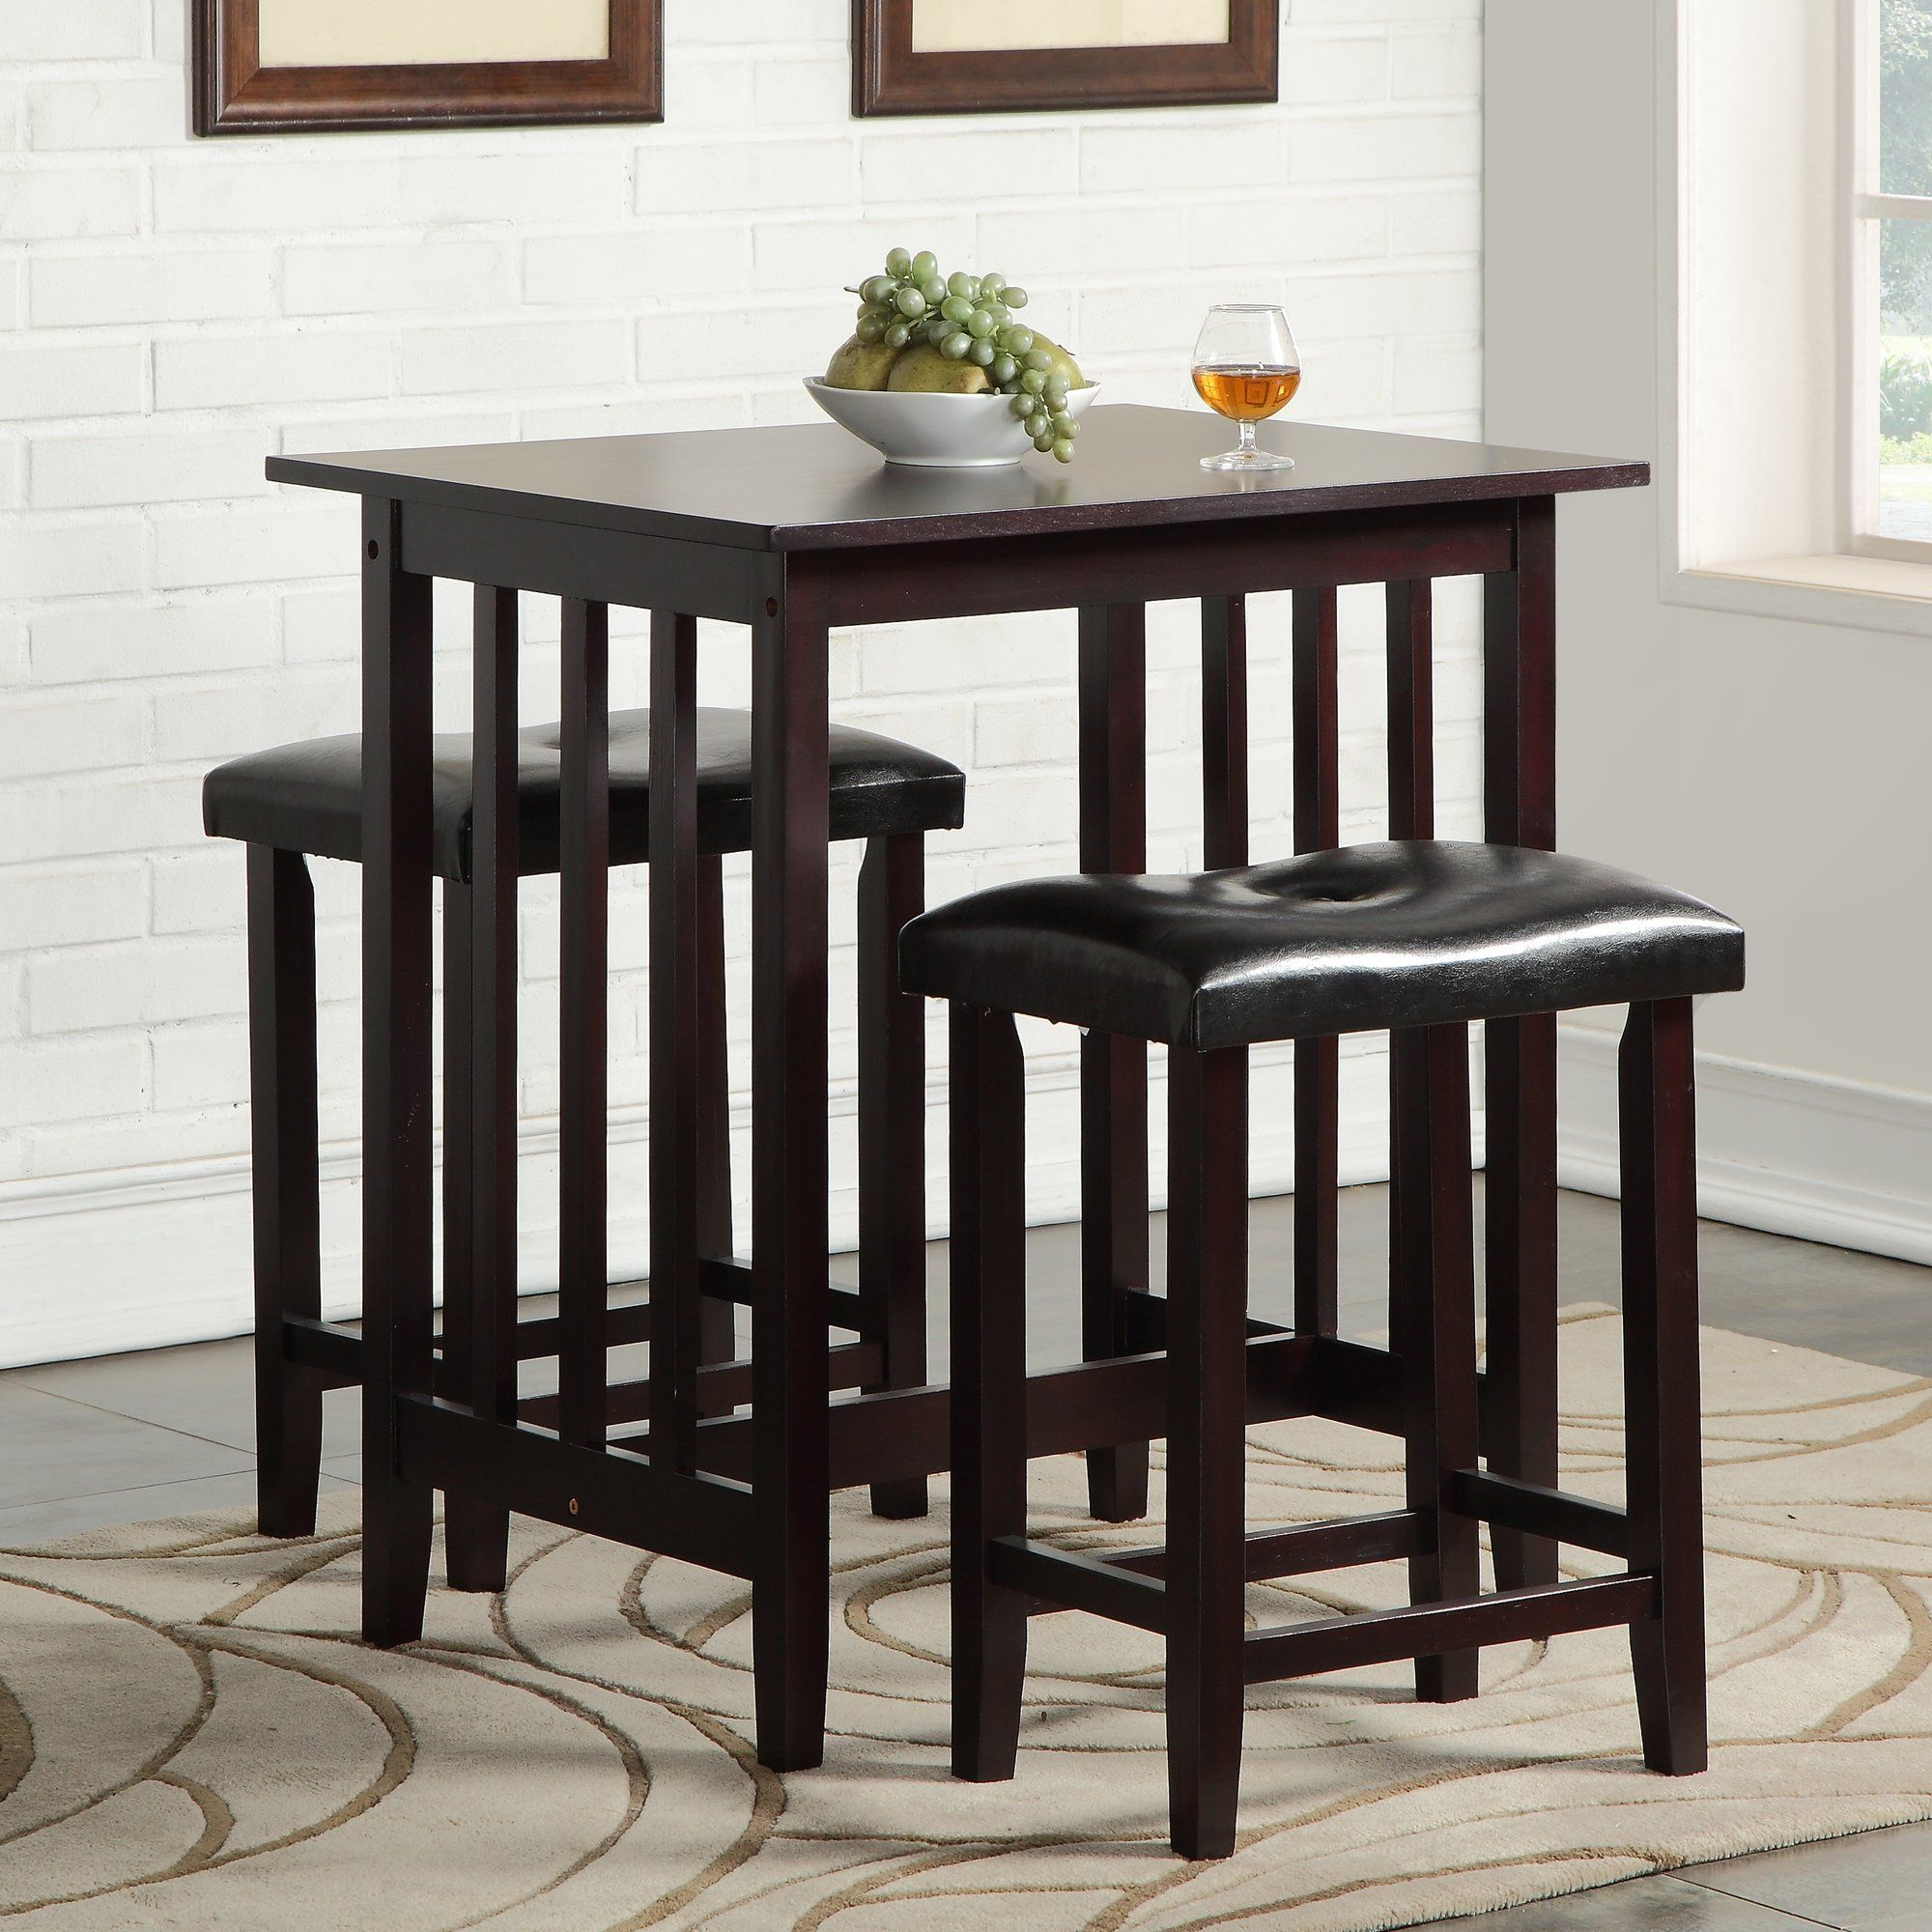 Pub Table In Bettencourt 3 Piece Counter Height Solid Wood Dining Sets (View 7 of 25)